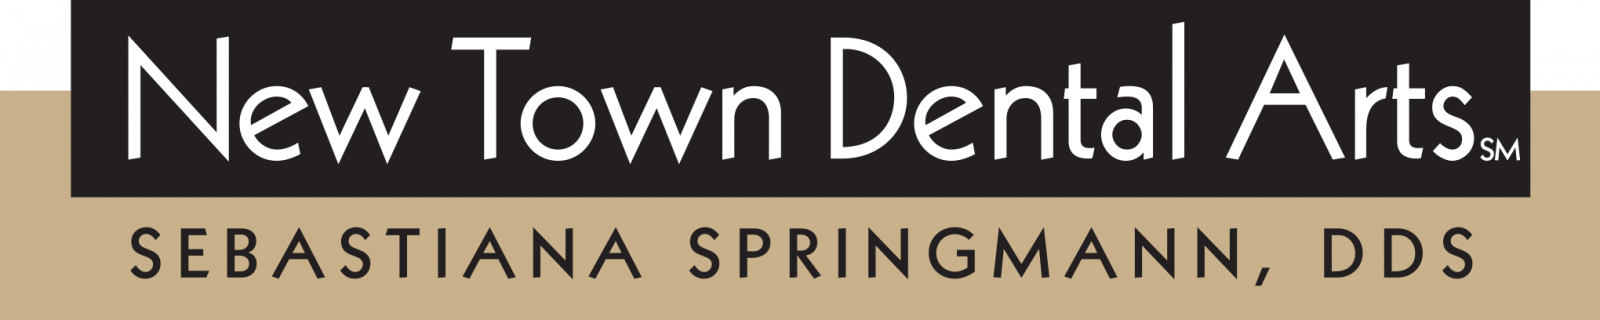 New Town Dental Arts Logo